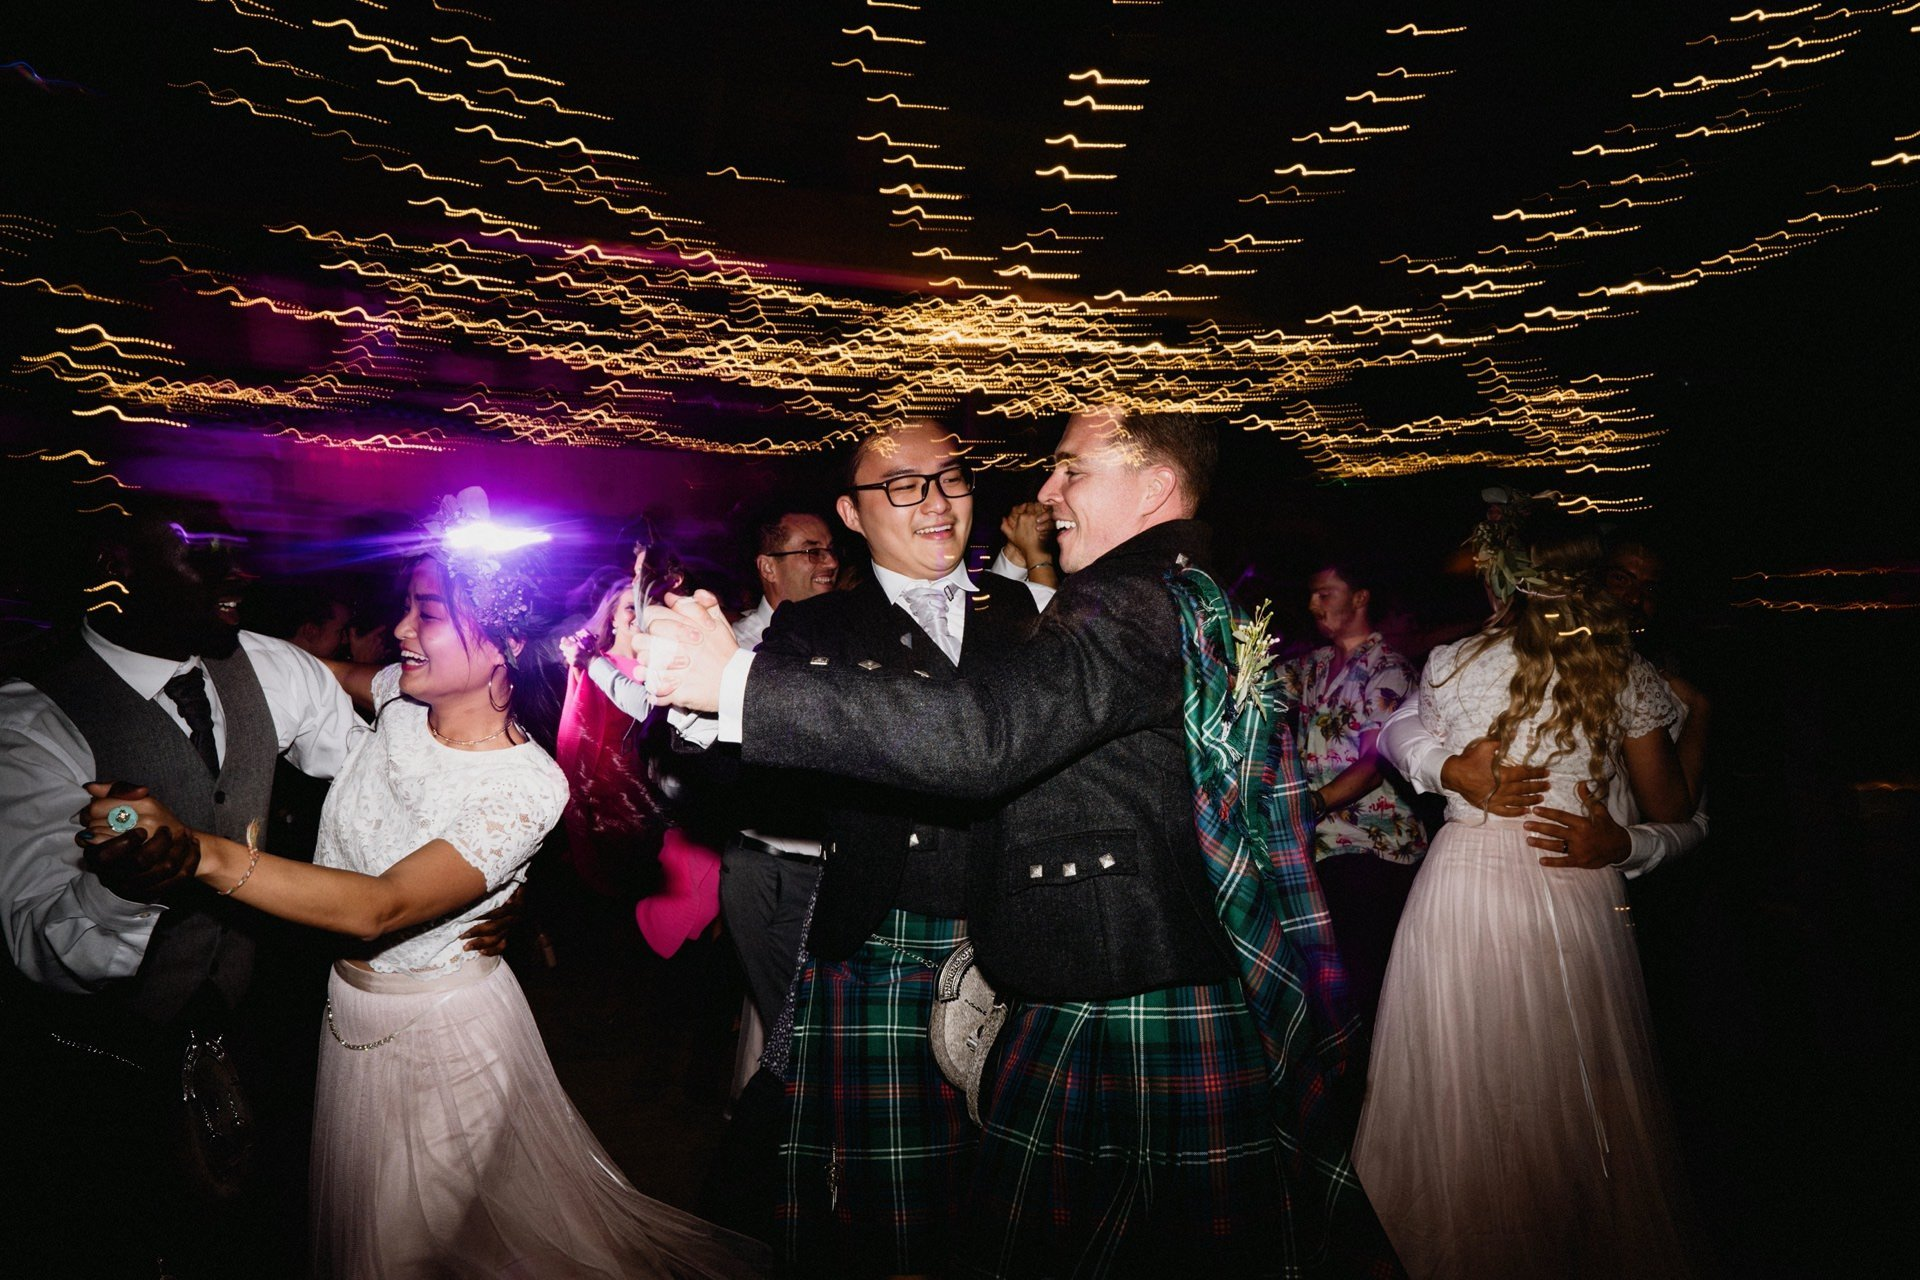 dancing grooms dancefloor Wedding